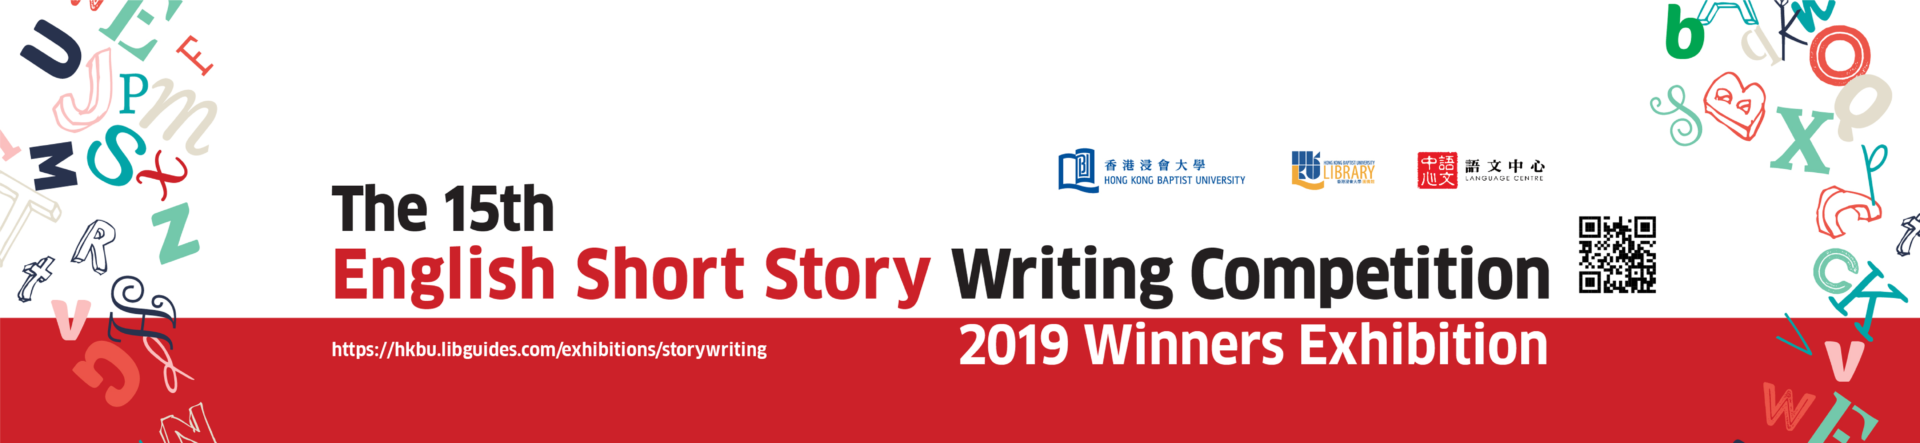 english short story competition keyvisual banner